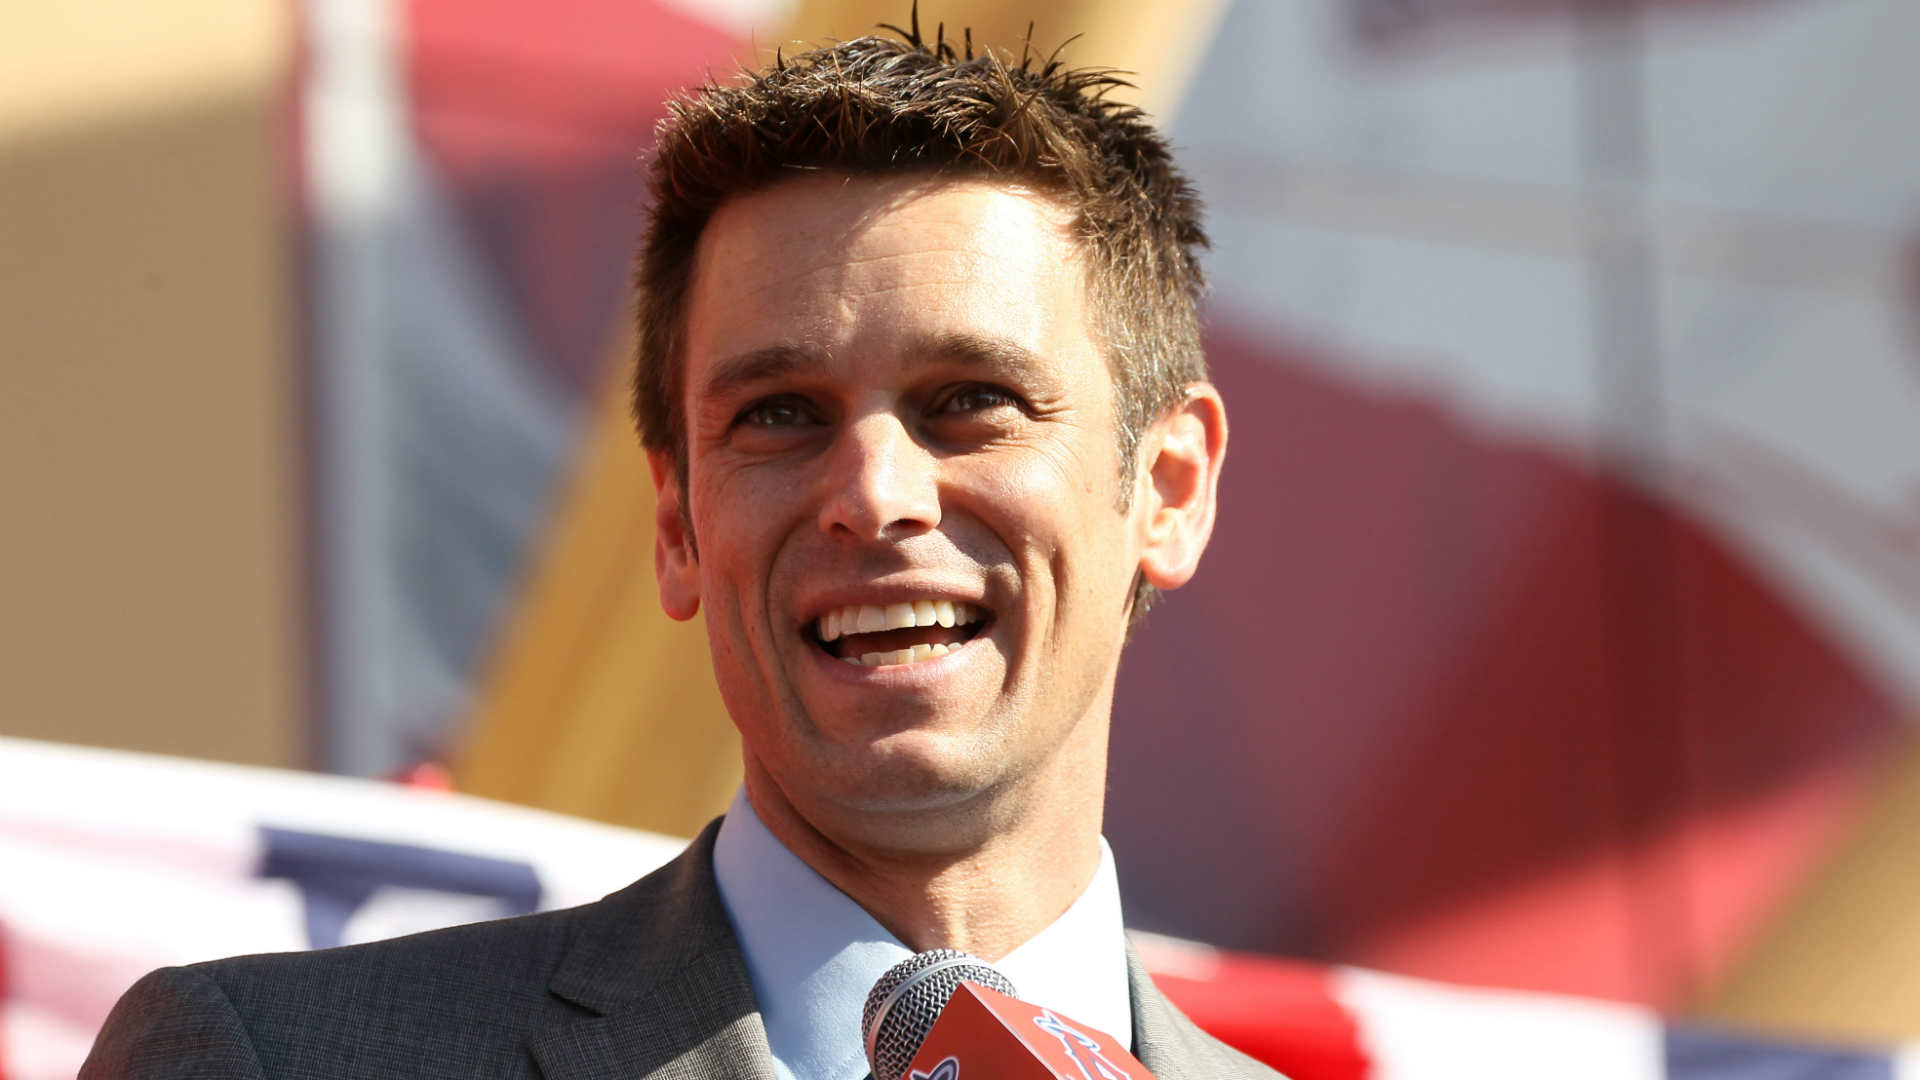 dipoto-jerry-07012015-us-news-getty-ftr_